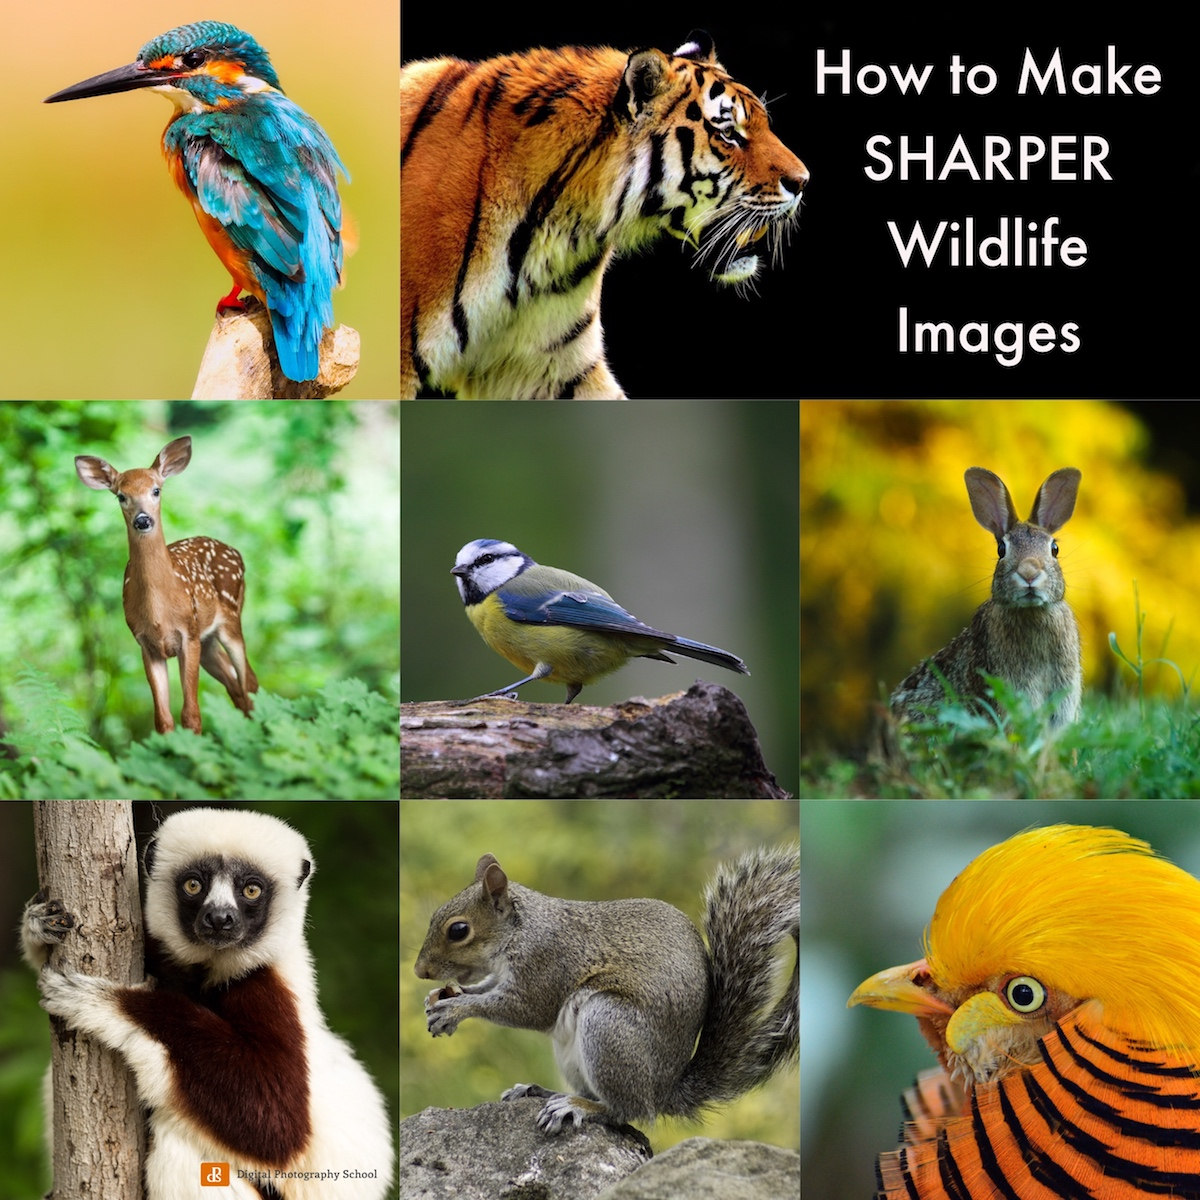 Making Sharper Wildlife Photographs - [Part 1 of 2]